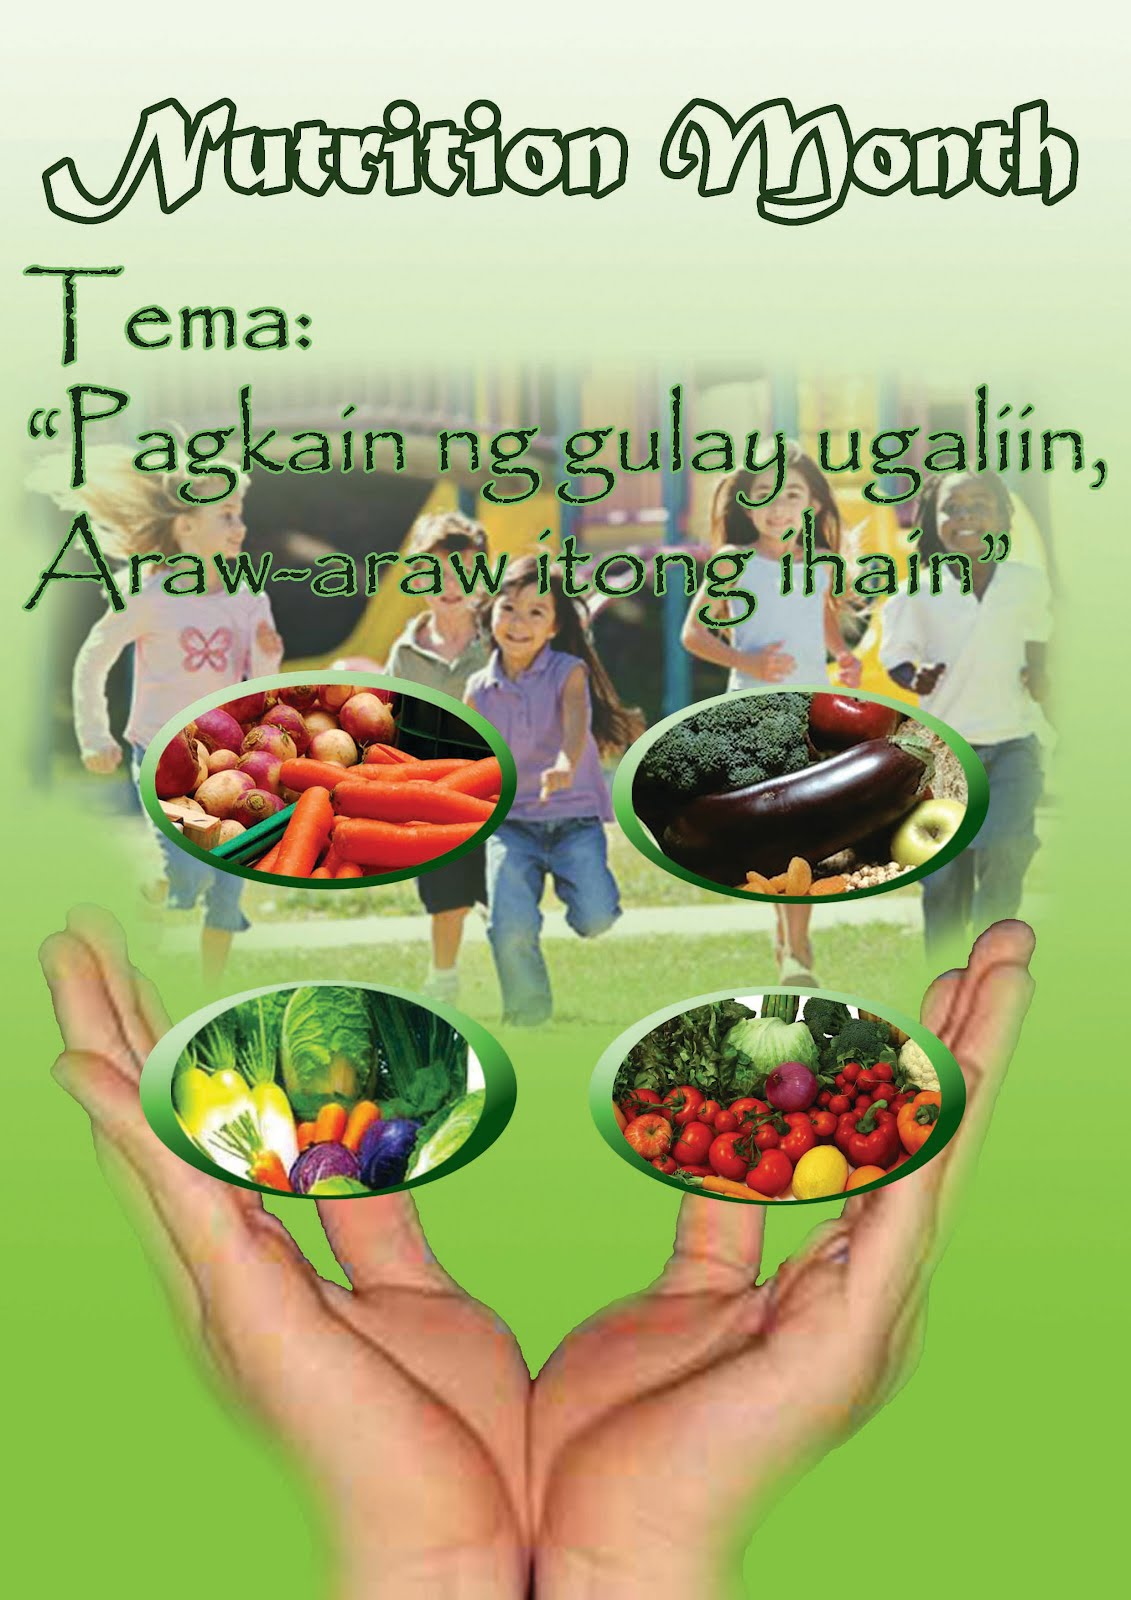 Nutrition Month Poster Making http://www.scolexportal.info/2012/08/electronic-poster-making-nutrition-month-2012.html